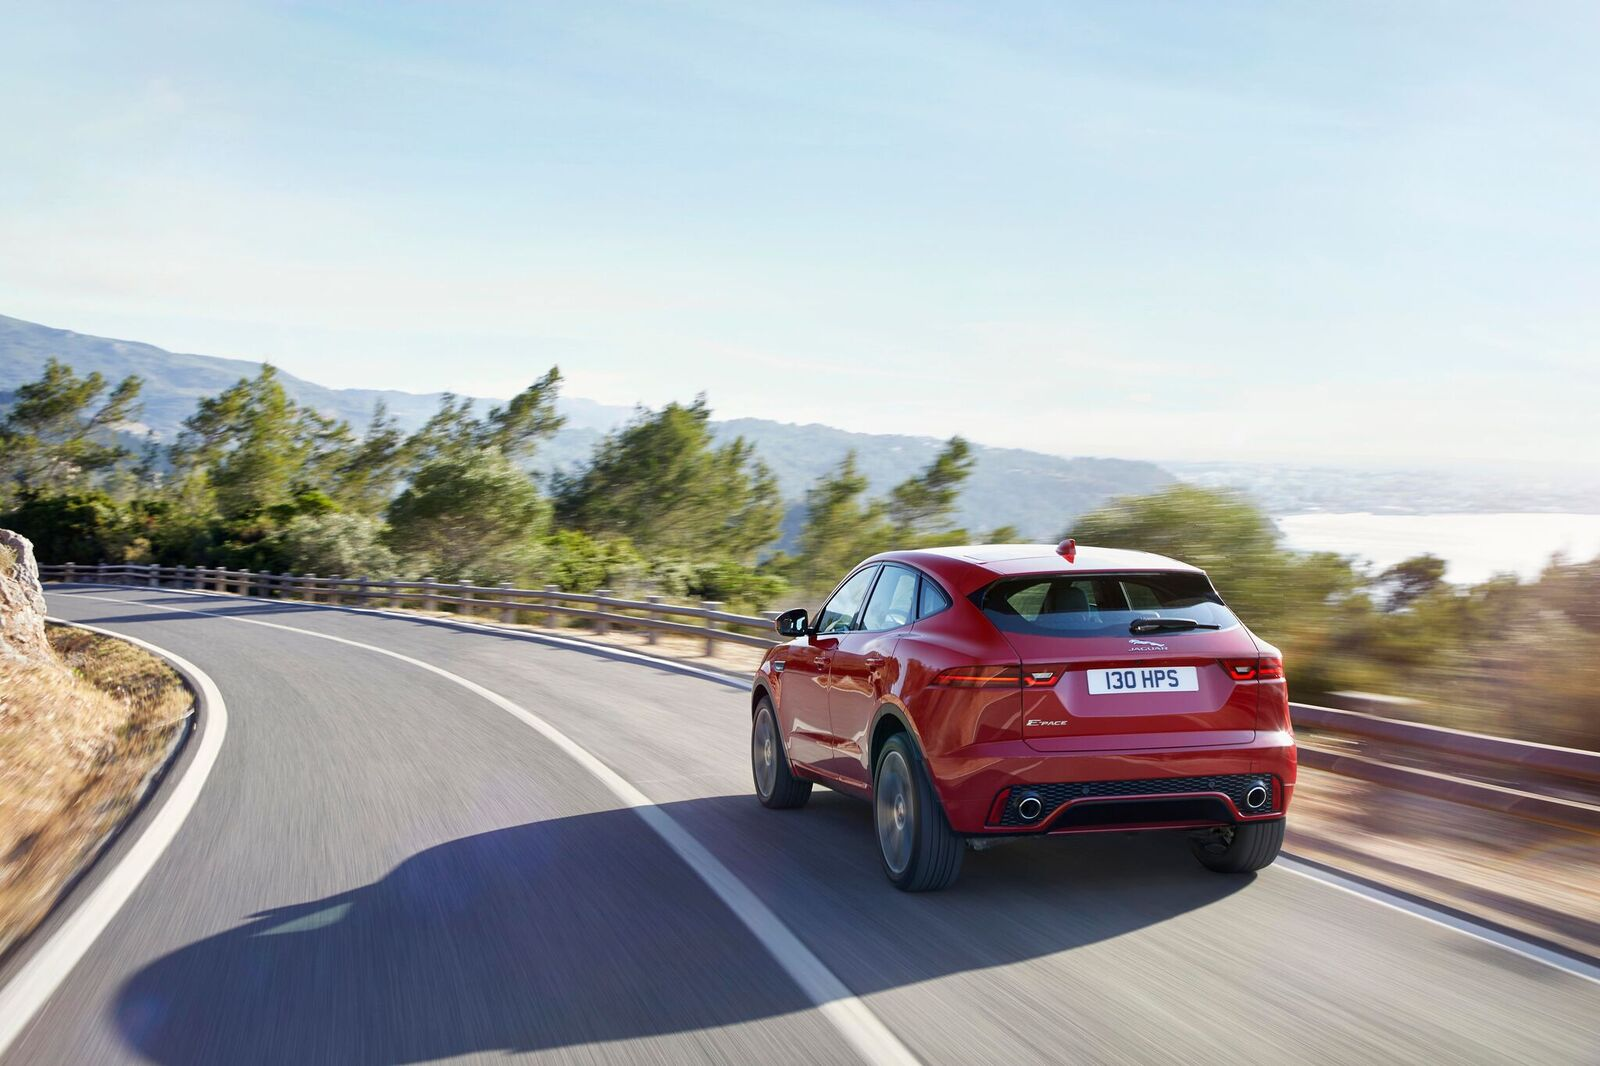 JAG EPACE 18MY Firstedition Onroaddynamic 130717 06 - Jaguar lance la E-PACE